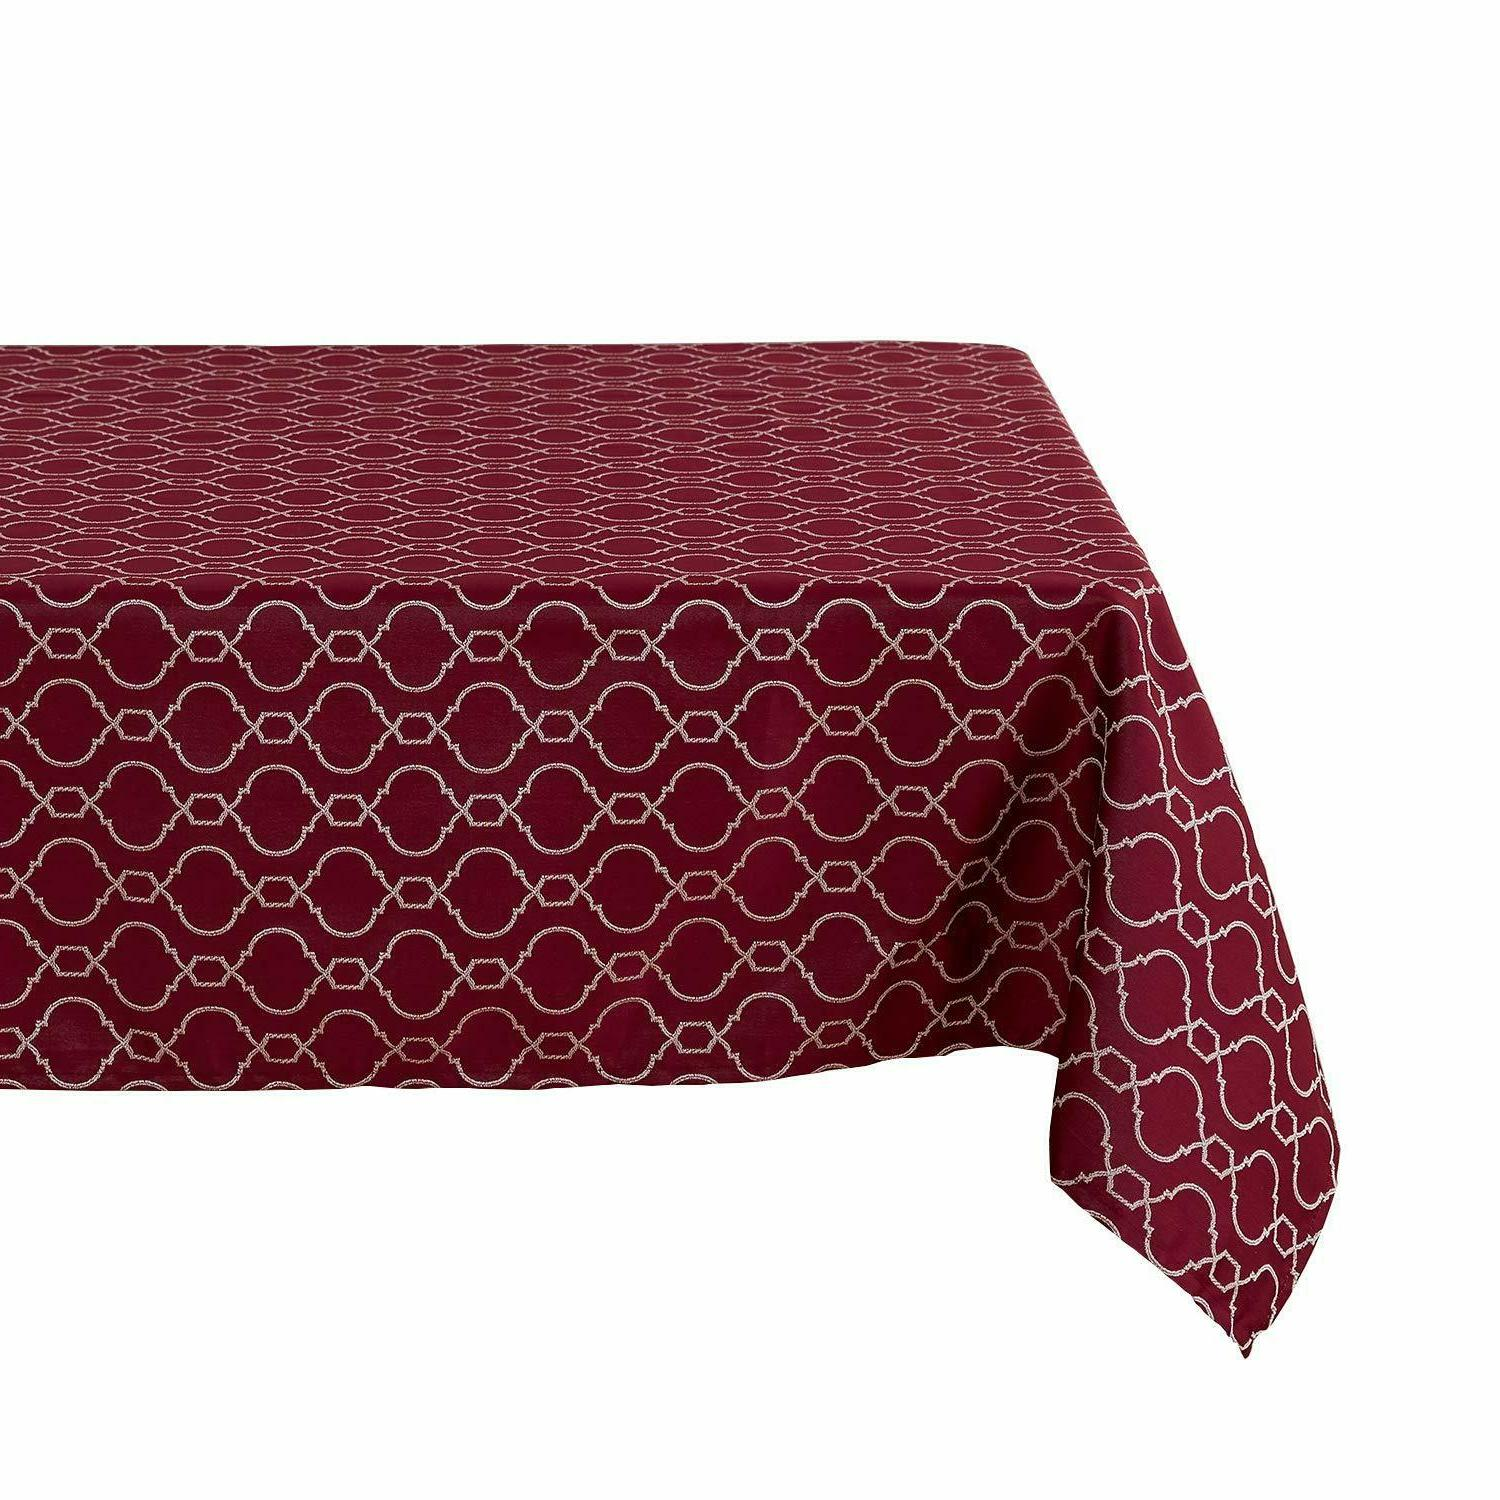 Tablecloths Jacquard Spillproof Water Polyester